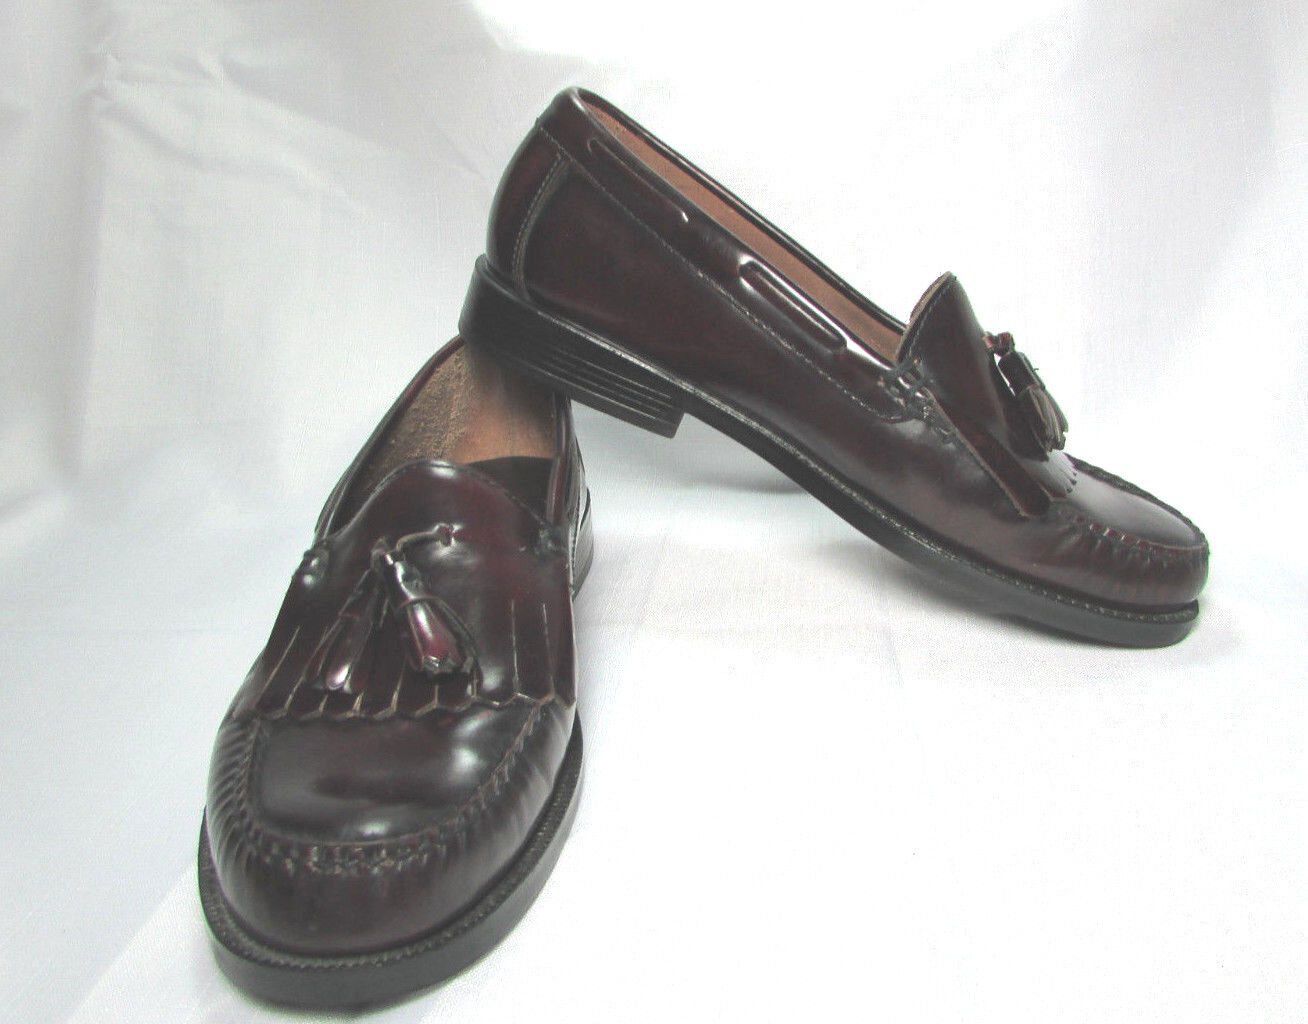 Bass Leather Weejuns Dark Burgundy Men's Tassel Loafers Size US 9.5 M